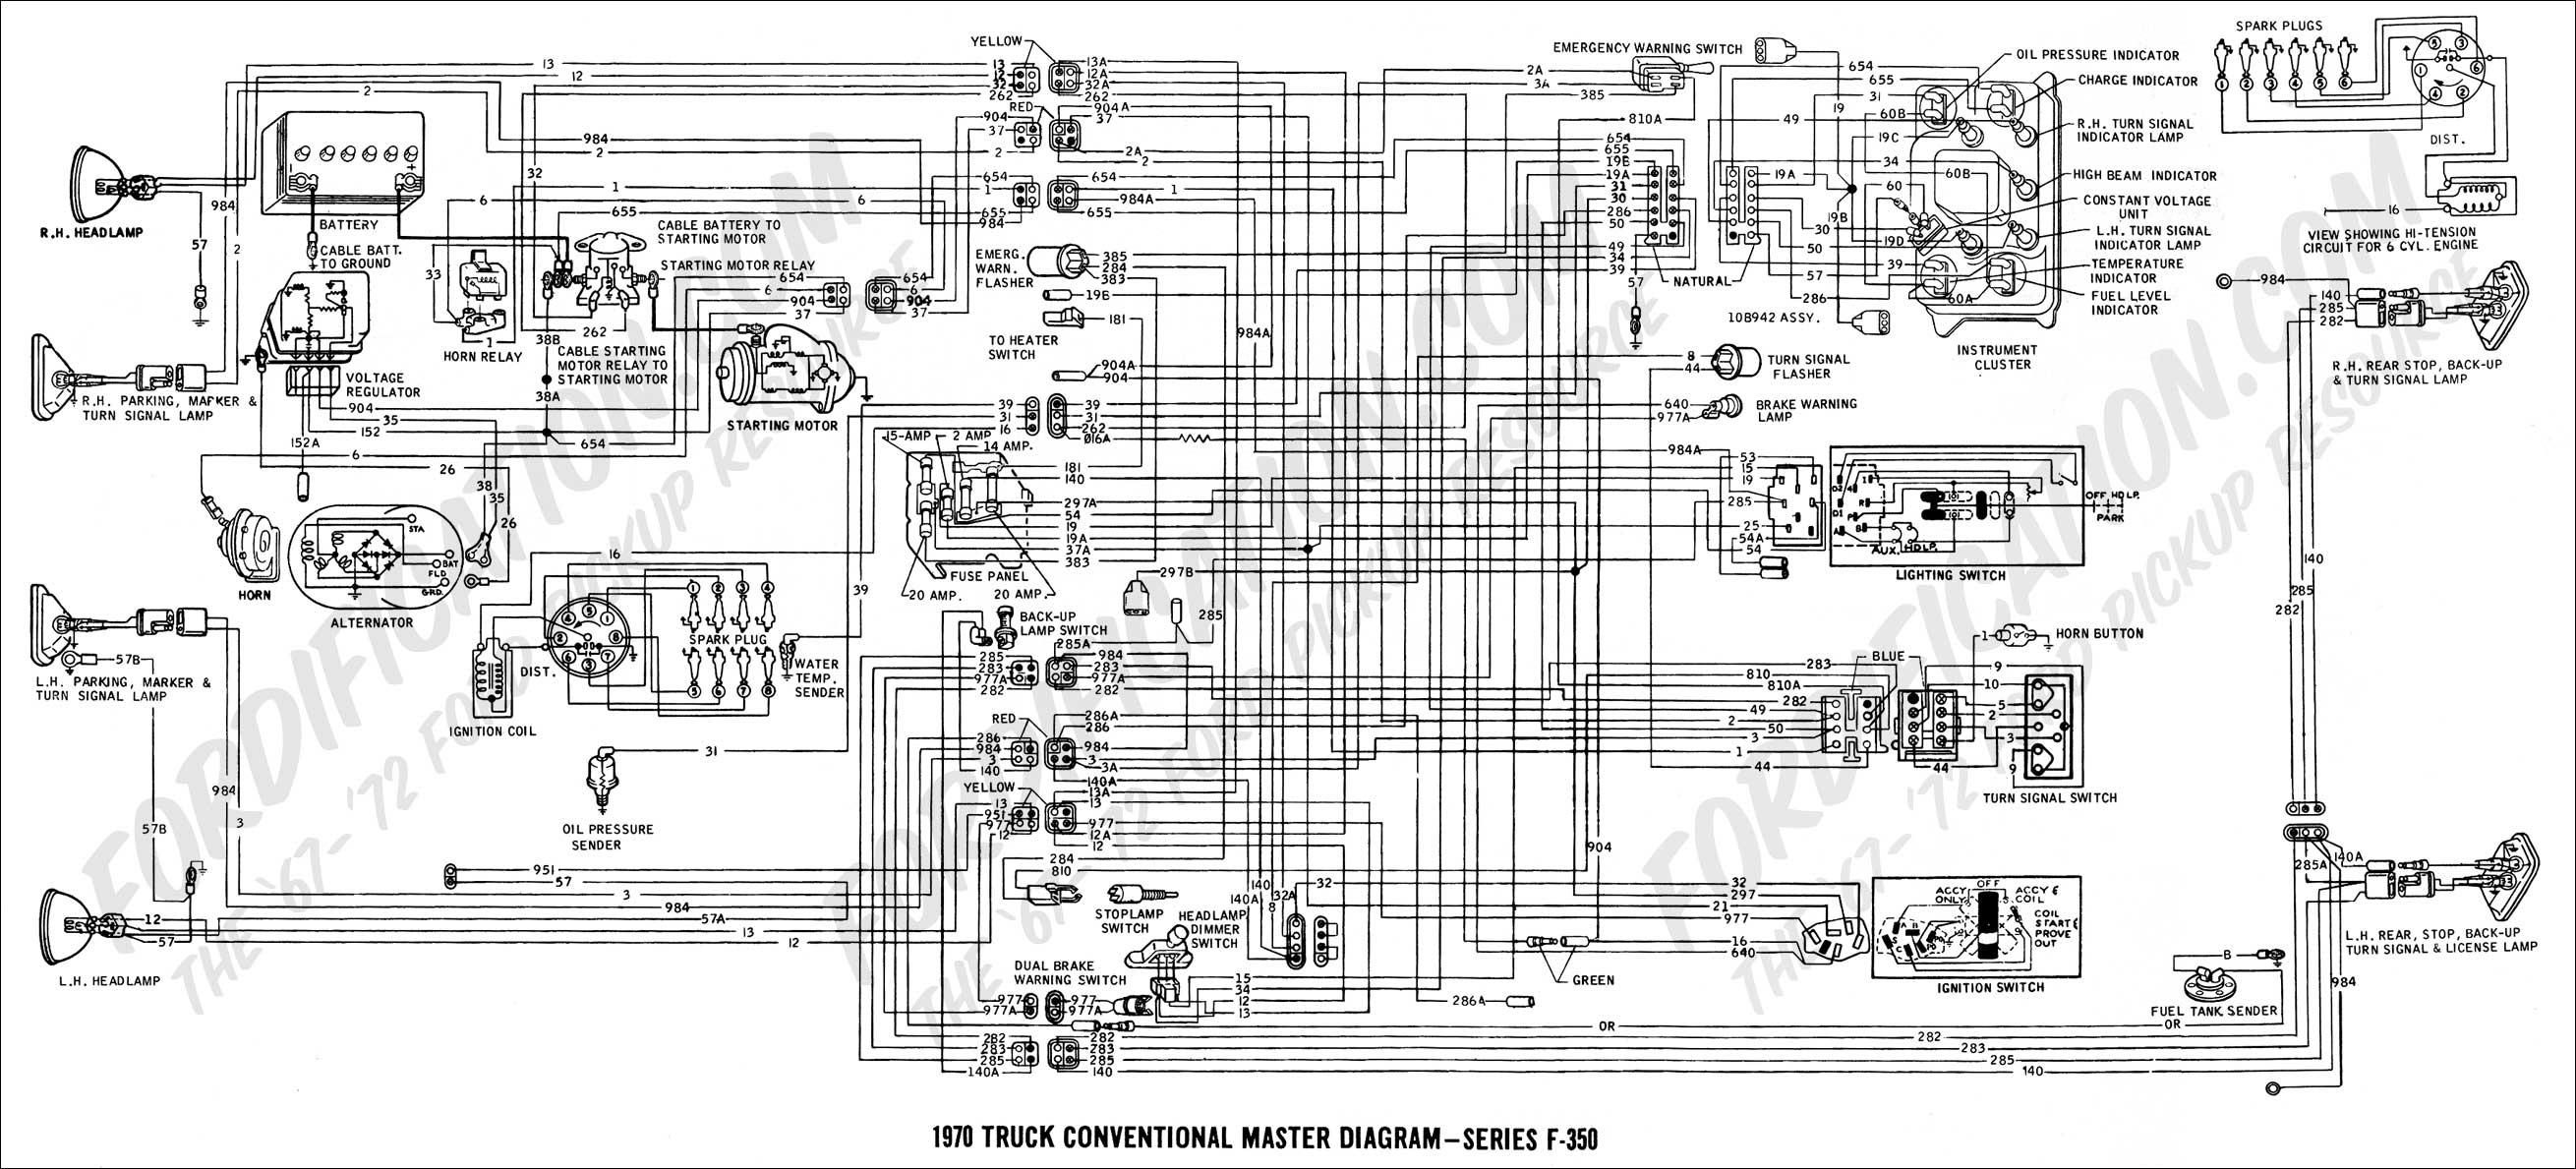 2005 Ford E250 Trailer Wiring | Wiring Diagram - Ford F250 Wiring Diagram For Trailer Lights